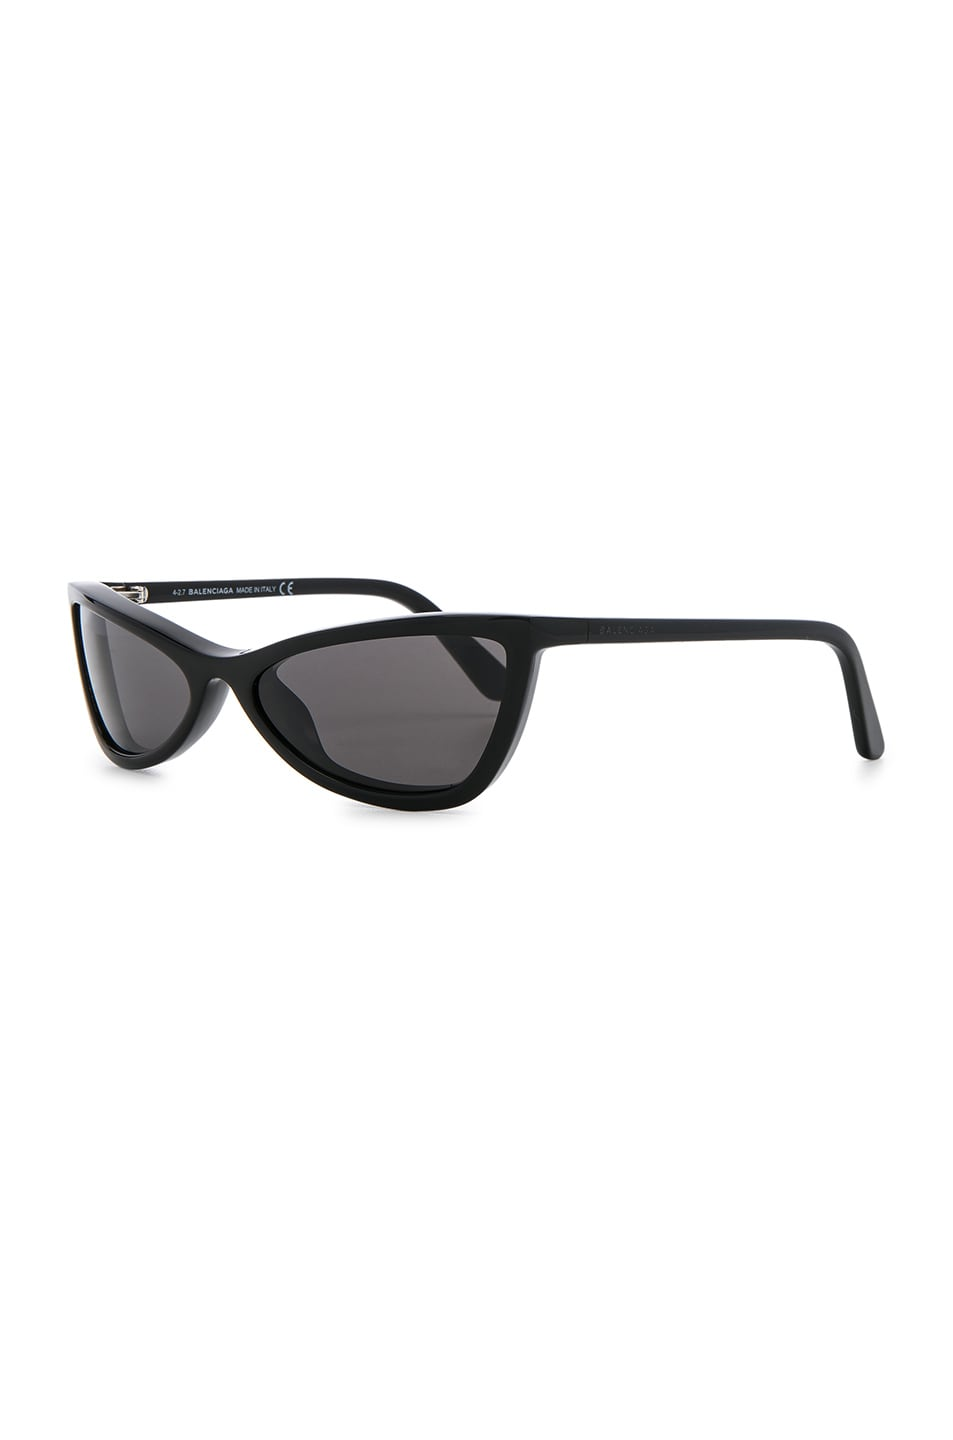 Image 2 of Balenciaga Slim Cateye Sunglasses in Shiny Black with Smokey Lense